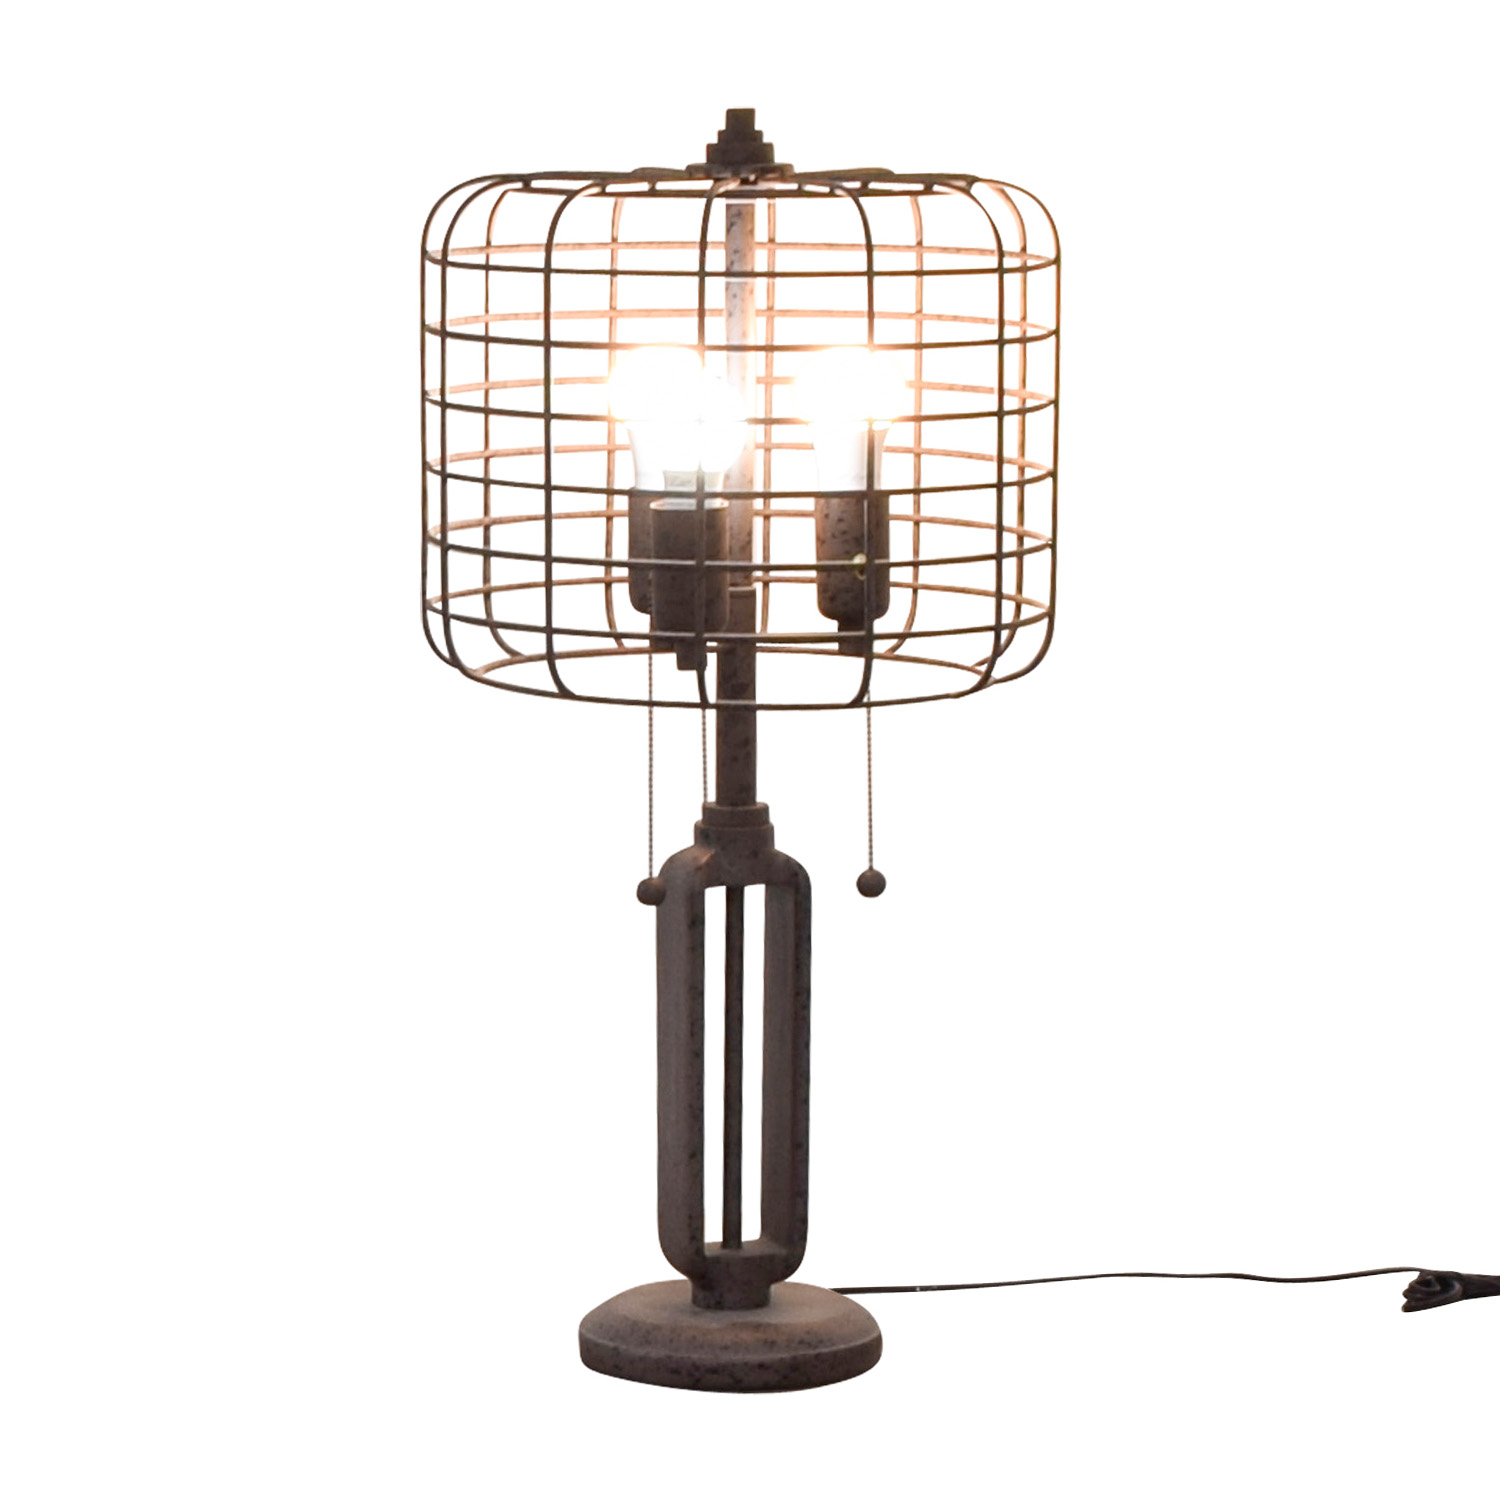 Franklin Iron Works Franklin Iron Works Industrial Cage Edison Bulb Rust Metal Table Lamp for sale